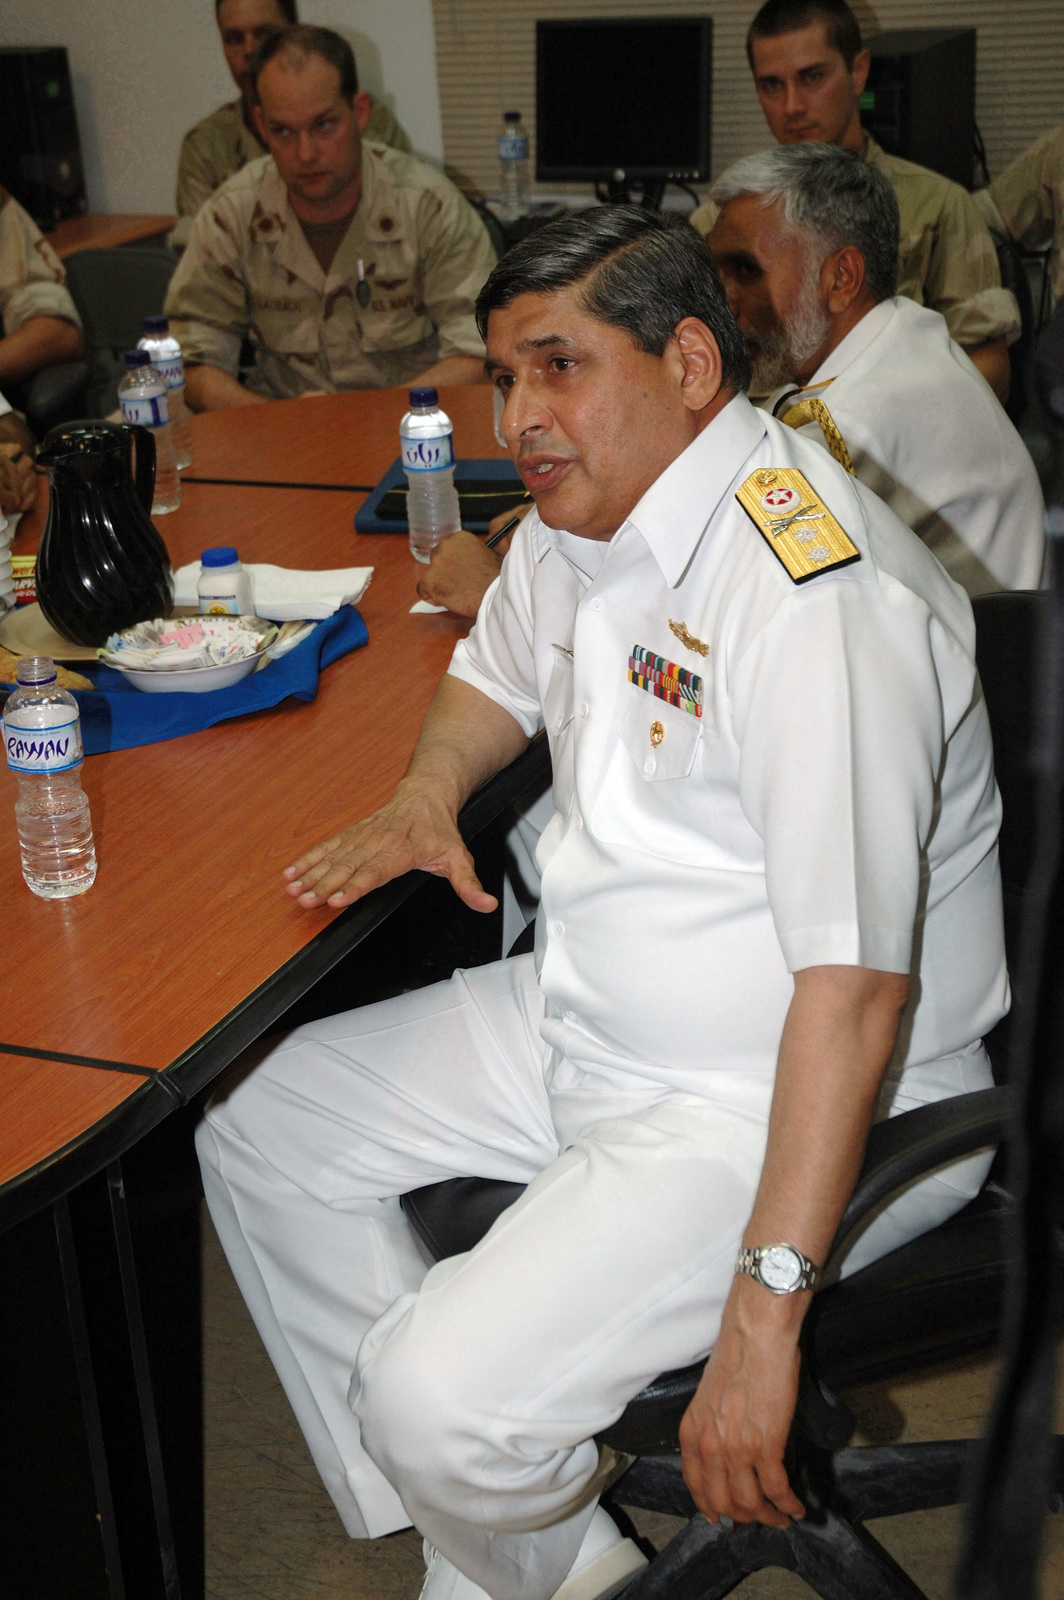 Pakistan Navy Rear Admiral (RADM) Shahid Iqbal, Commander, Task Force 150 (CTF-150), speaks with US Navy (USN) Sailors assigned to Patrol Squadron 9 (VP-9), during his visit at Al Udeid Air Base (AB), Qatar. RADM Iqbal is visiting to learn more about the operation and maintenance of the P-3C Orion asset. VP-9 is currently on deployment to both 5th and 7th Fleet Areas of Operation (AOR), conducting reconnaissance and maritime patrol operations supporting Operation IRAQI FREEDOM and Operation ENDURING FREEDOM